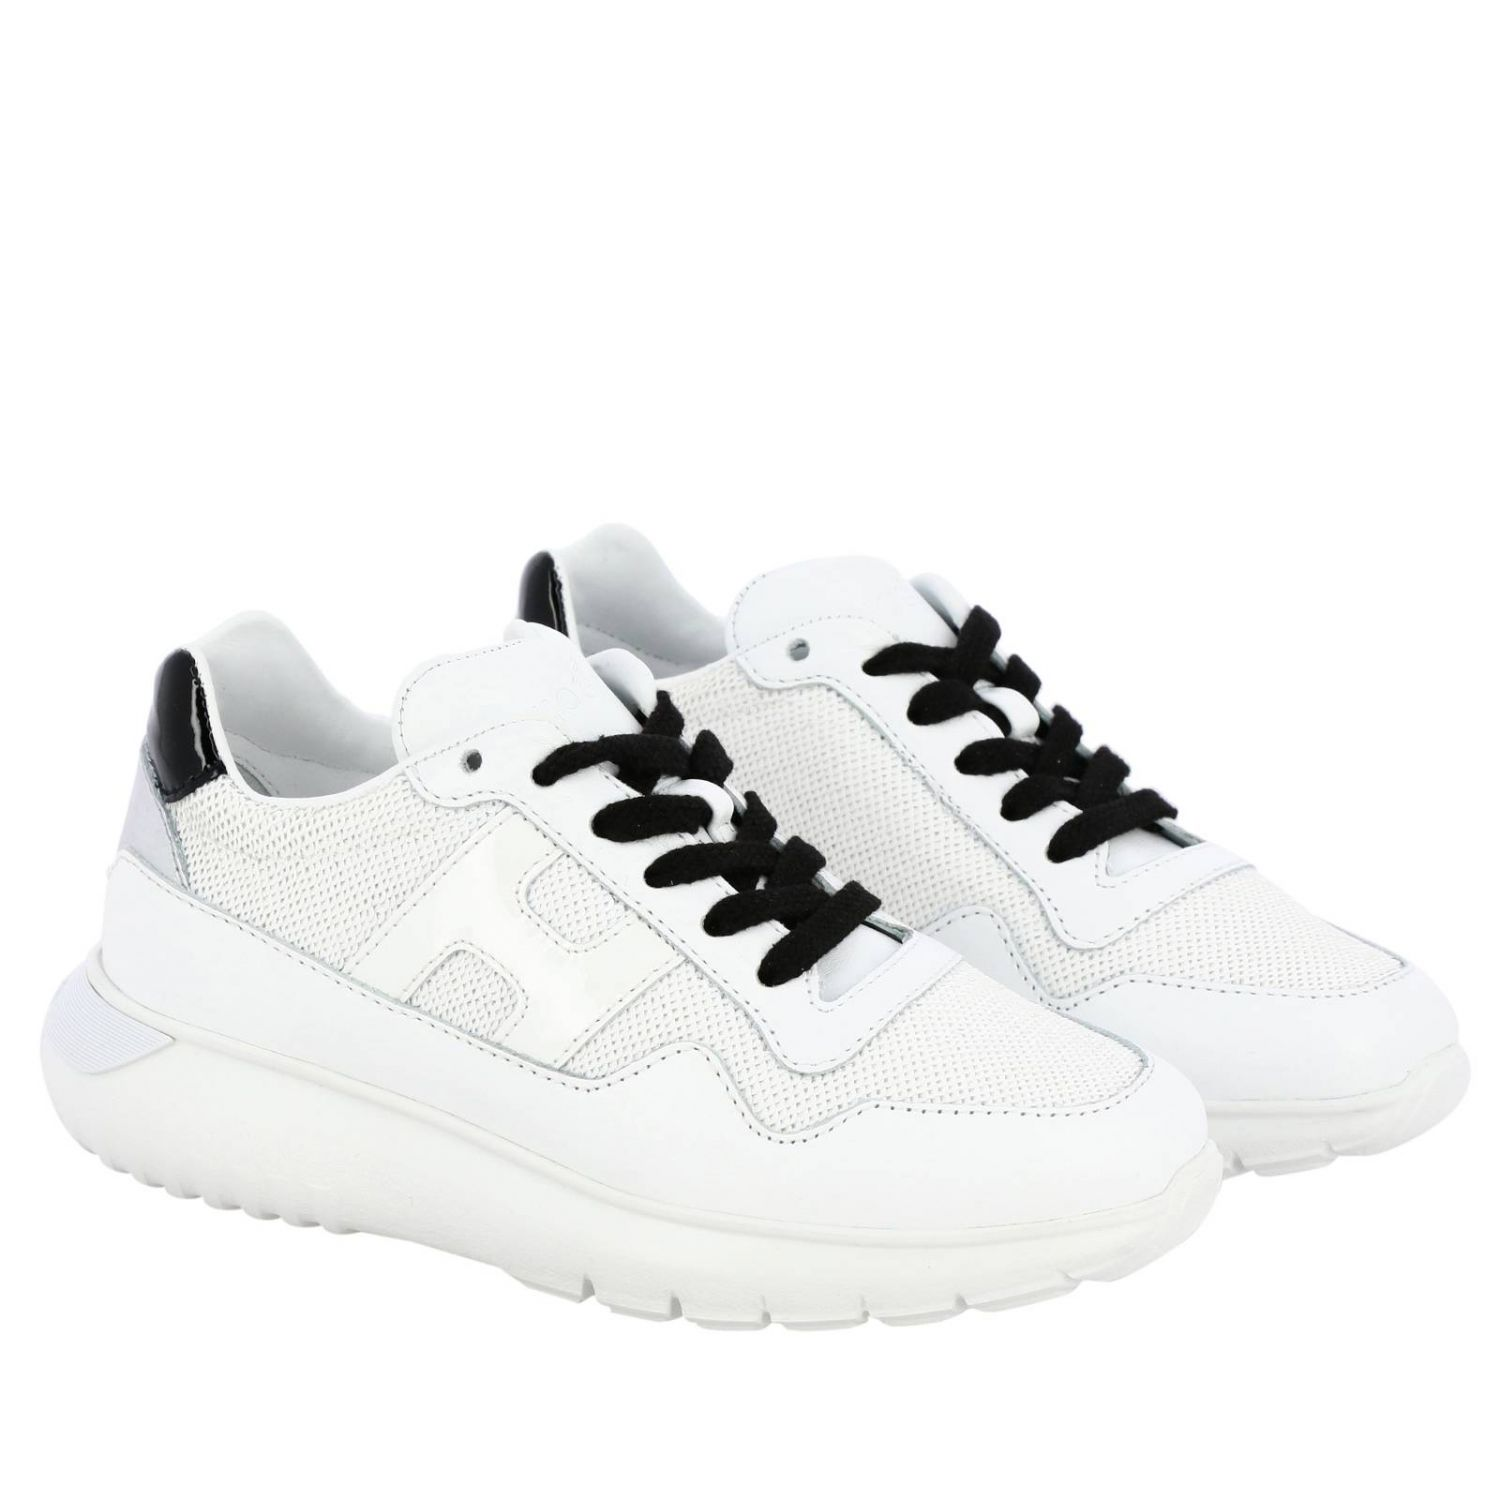 Cube Hogan sneakers in leather and sequins white 2